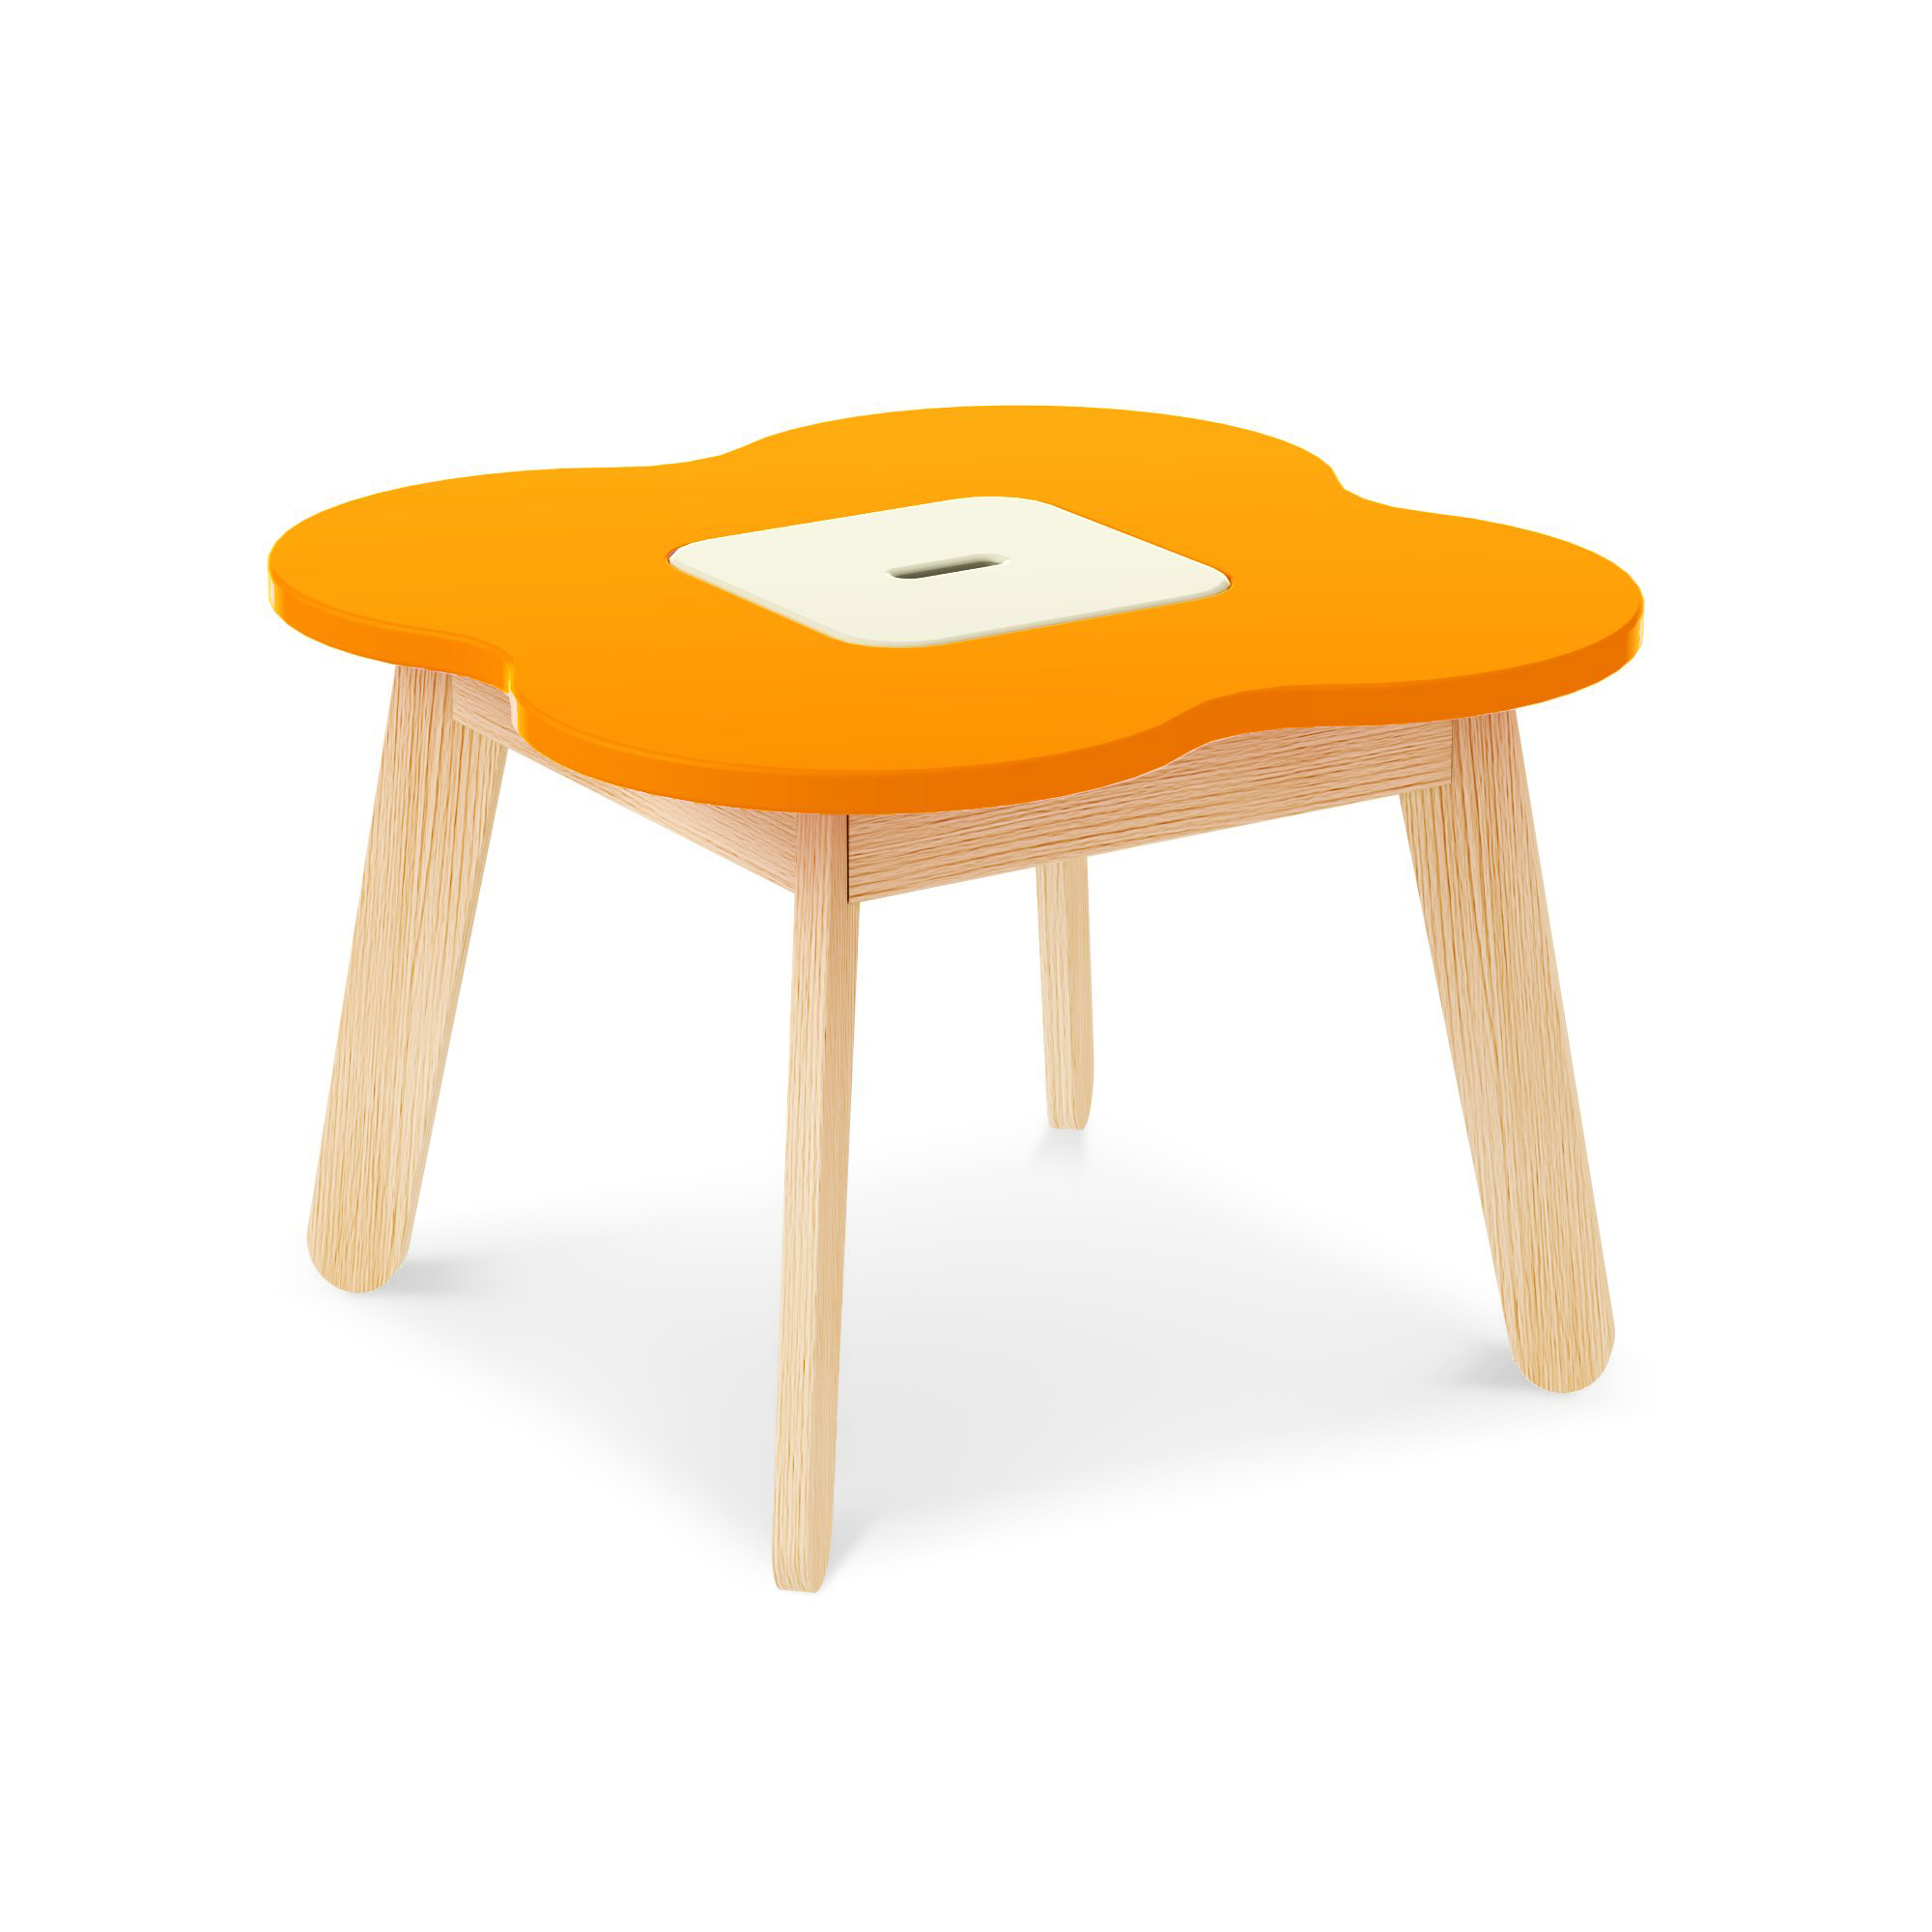 Spieltisch Simple Orange, Timoore